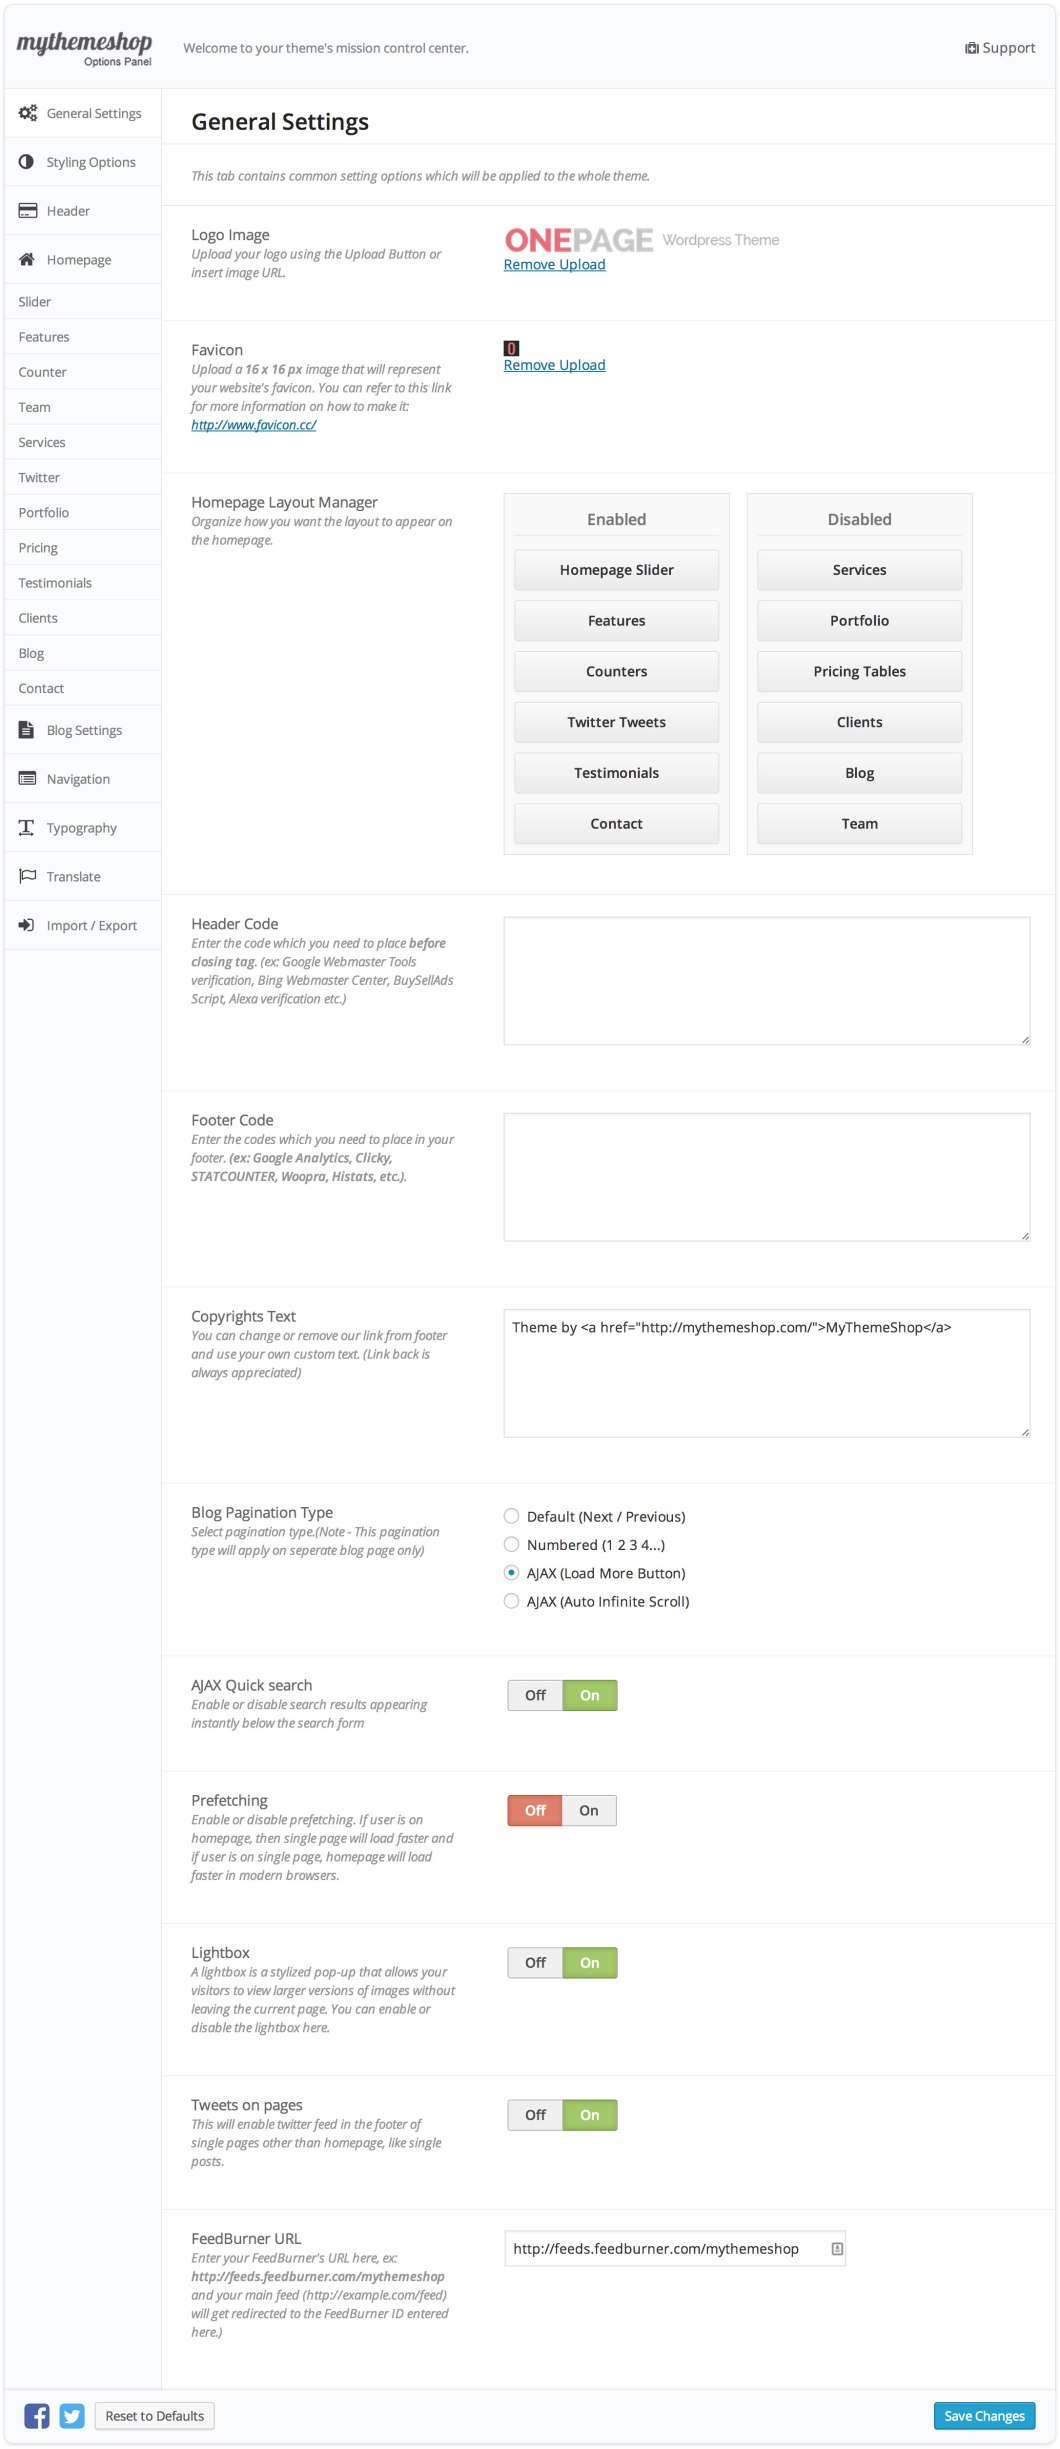 Onepage General Settings